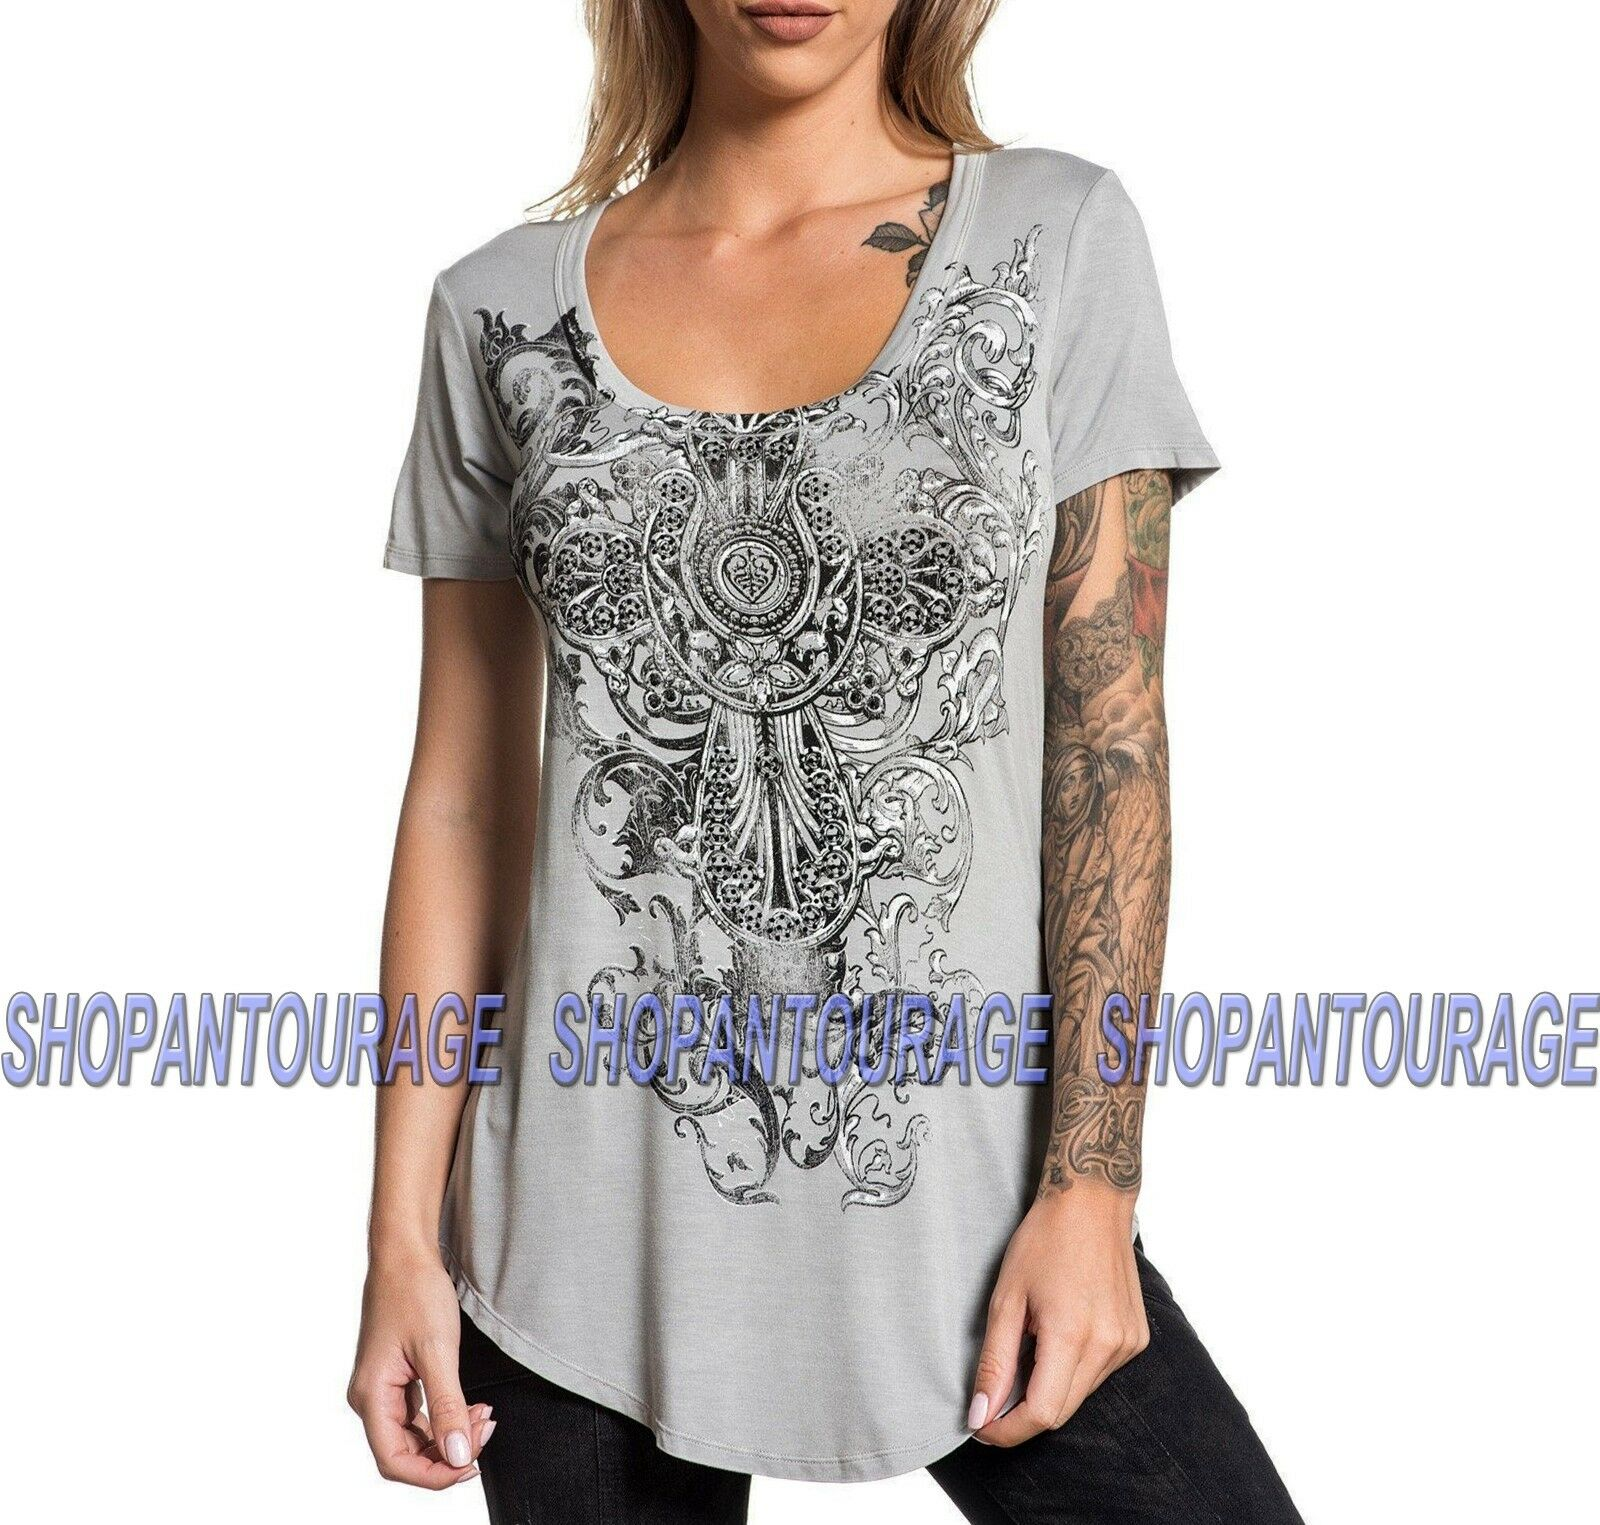 Sinful yellow Bend S4021 New Short Sleeve Fashion T-shirt Top By Affliction